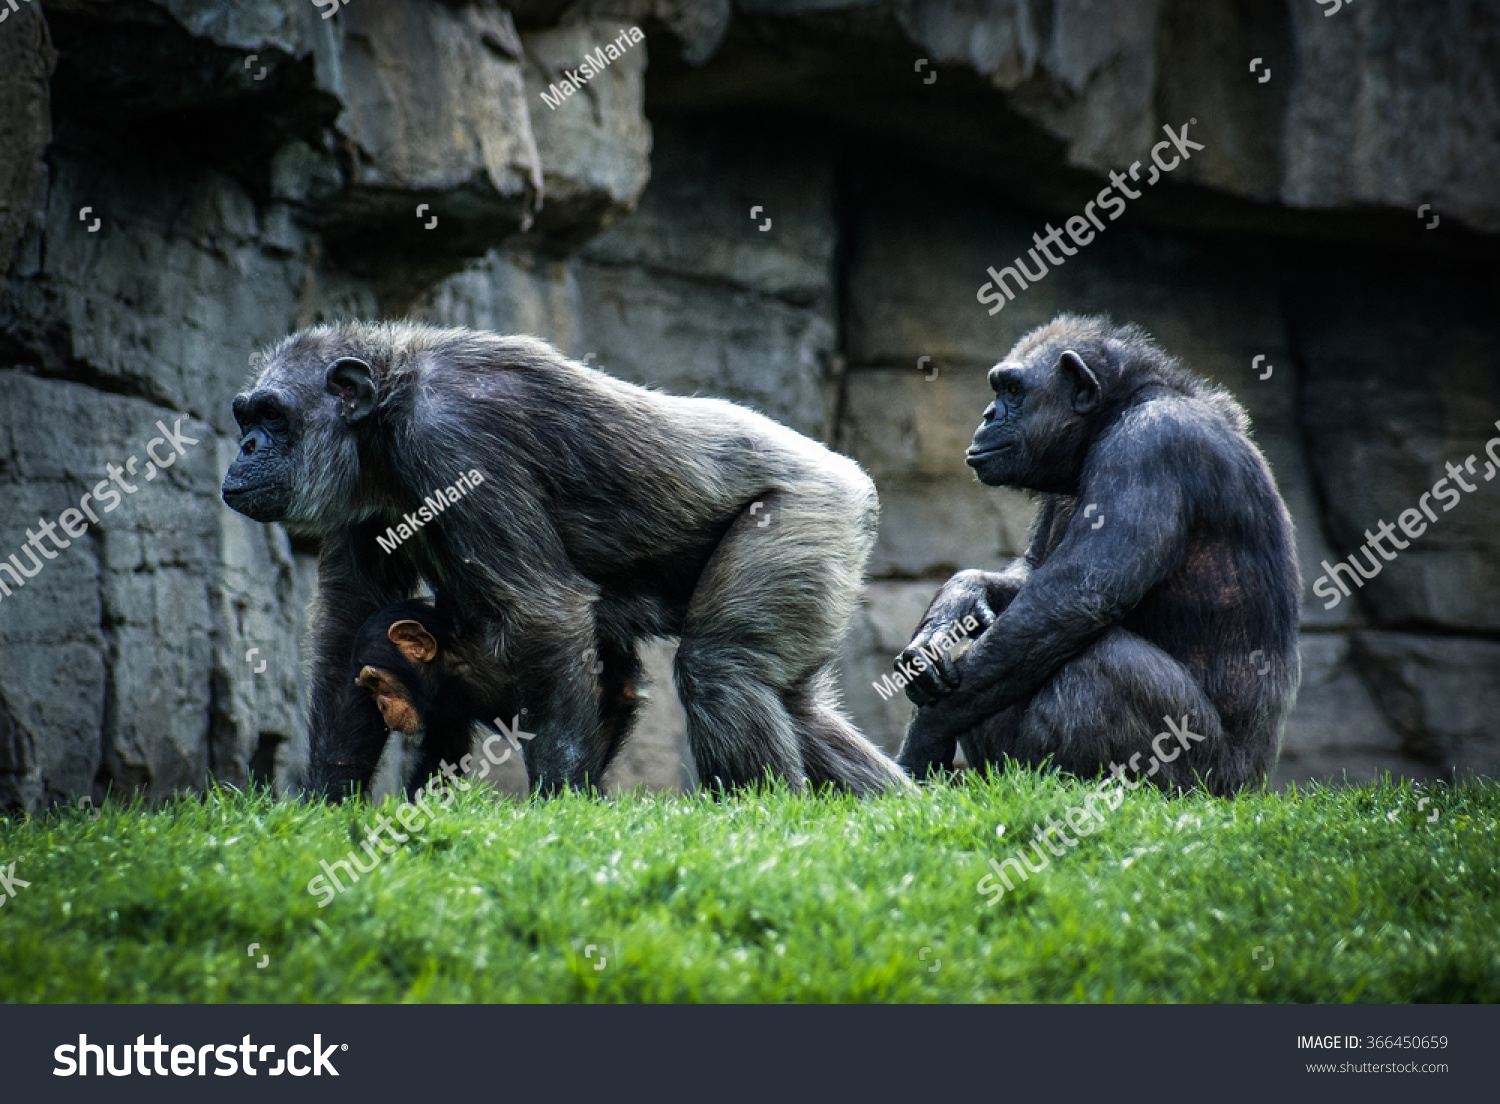 Monkey family in a zoo in Valencia Spain